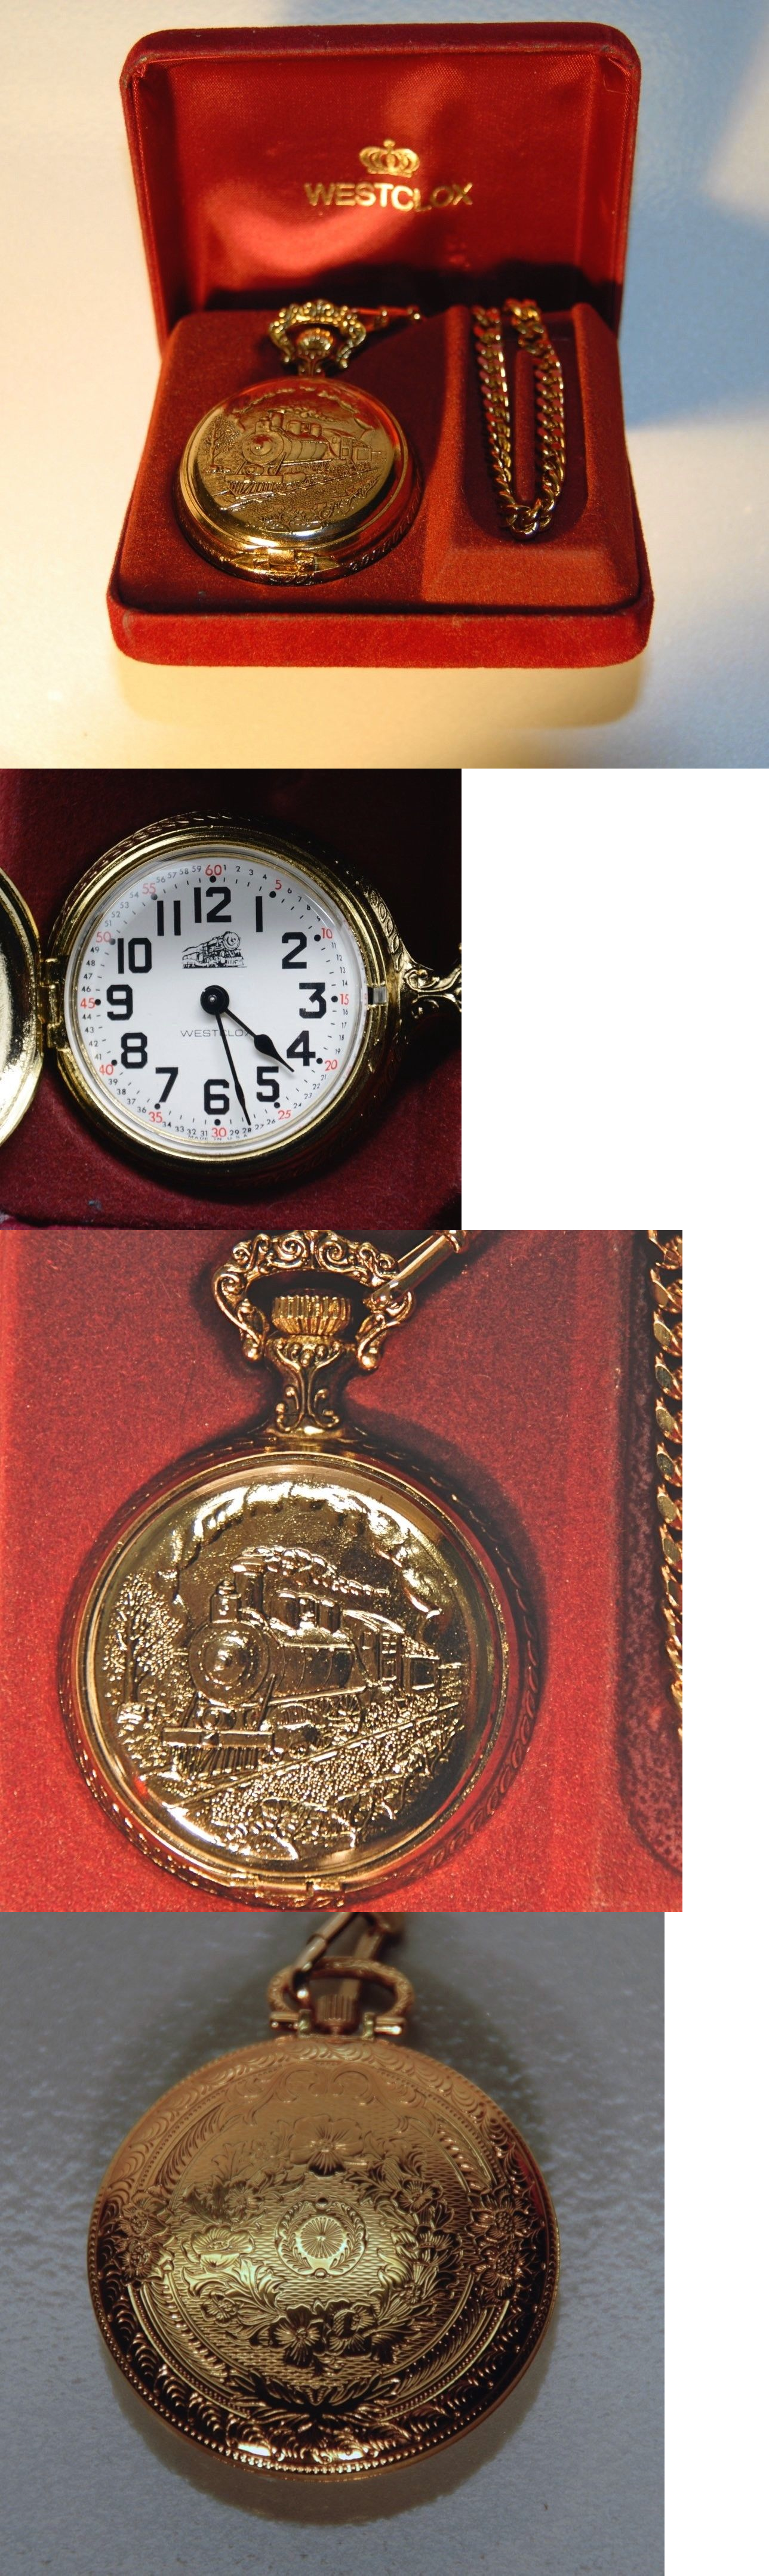 bulova pocket s guido face open watches pocketwatch train watch wikipedia collection approved railroad quartz